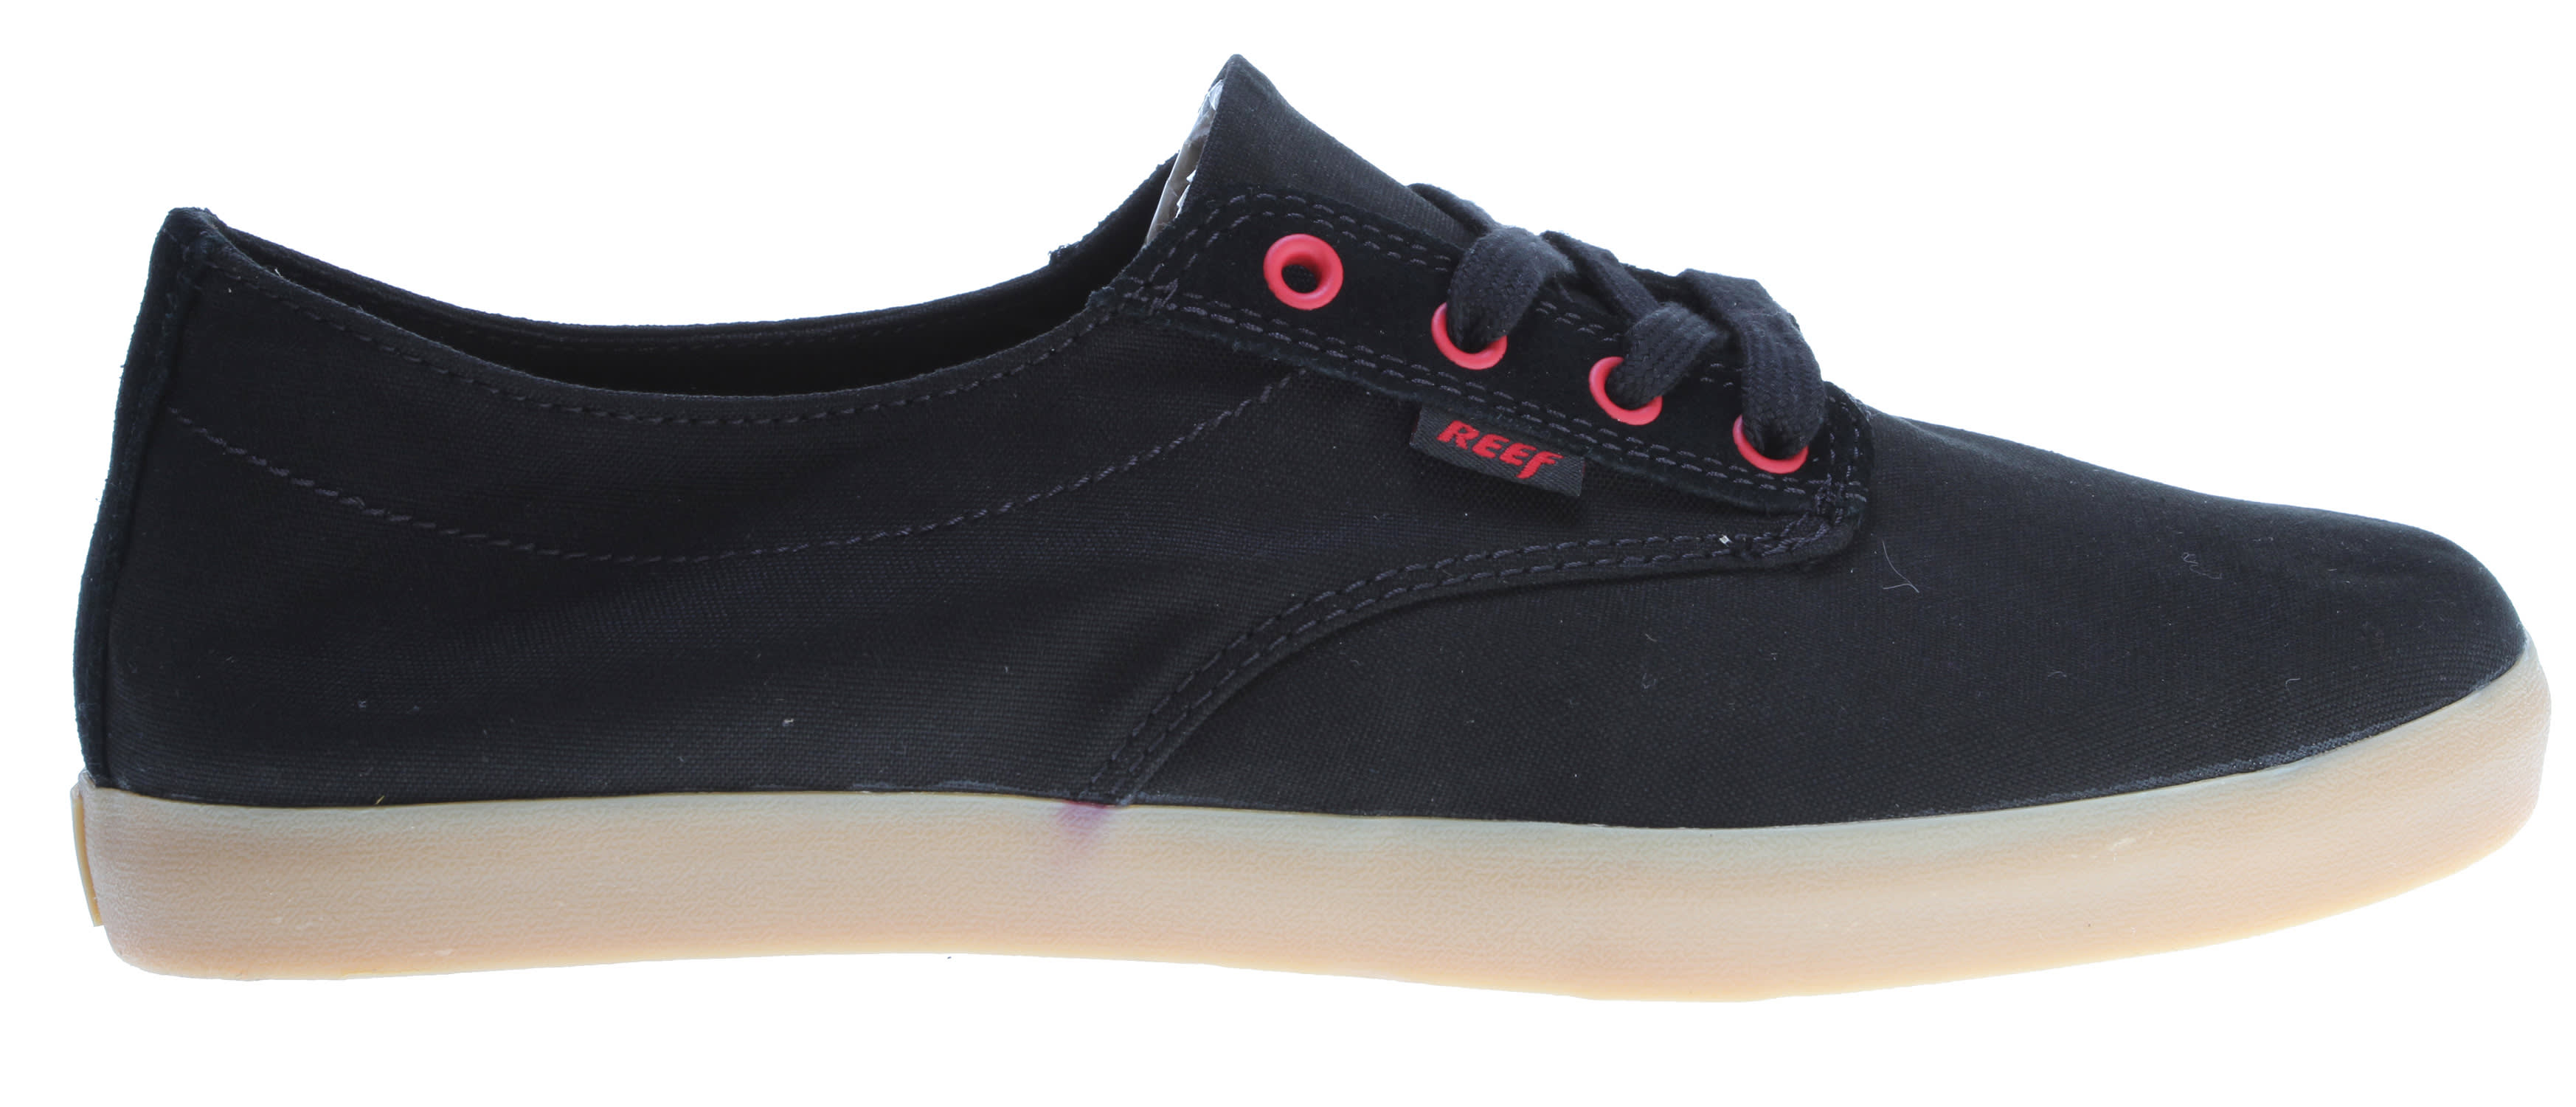 Shop for Reef Stanley Casual Shoes Black/Red - Men's